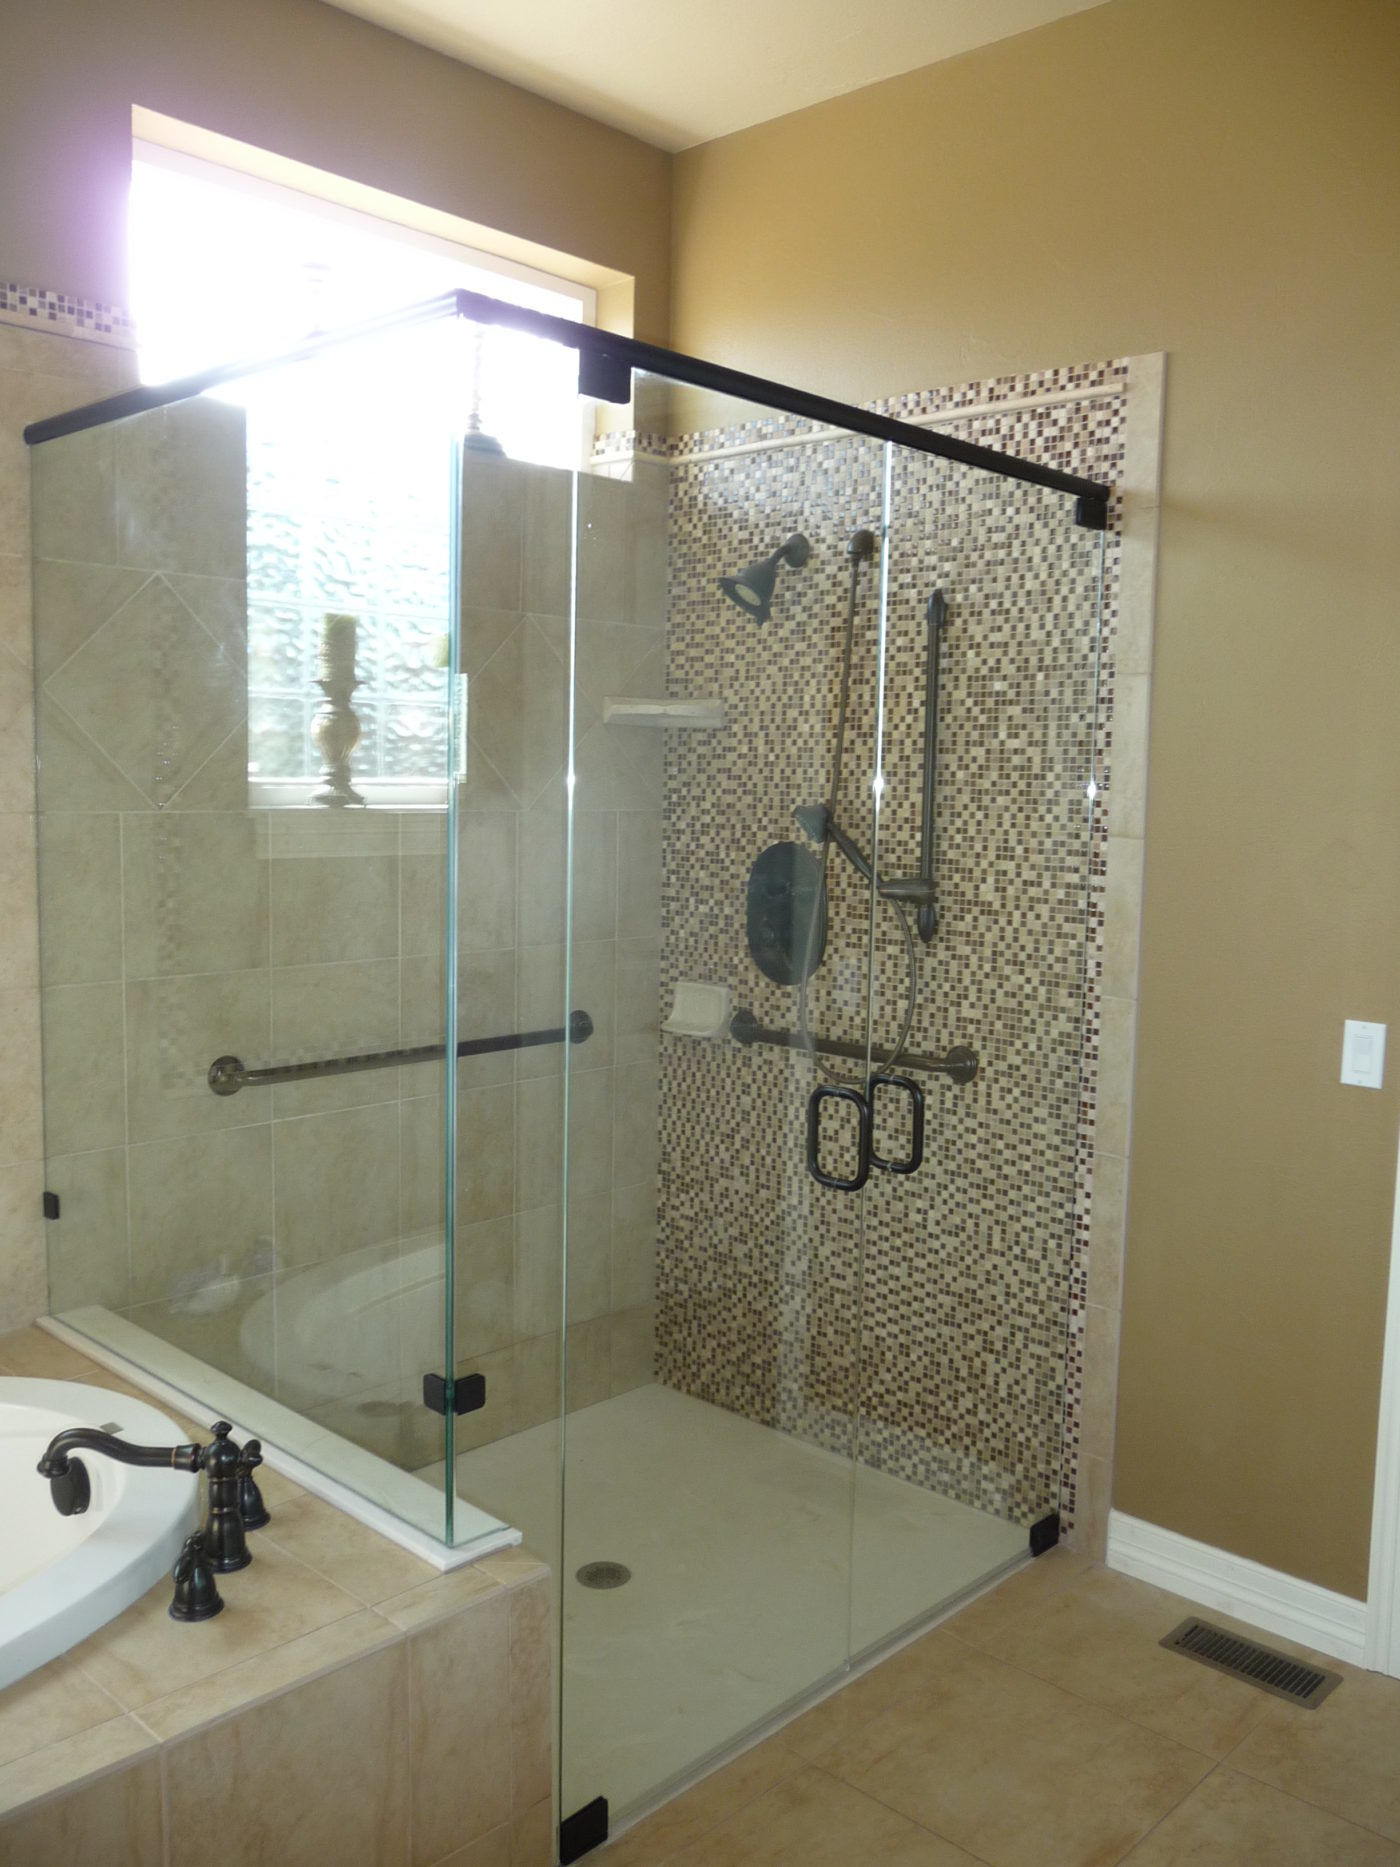 Euro Style Bathroom With Glass Doors Castle Rock Co